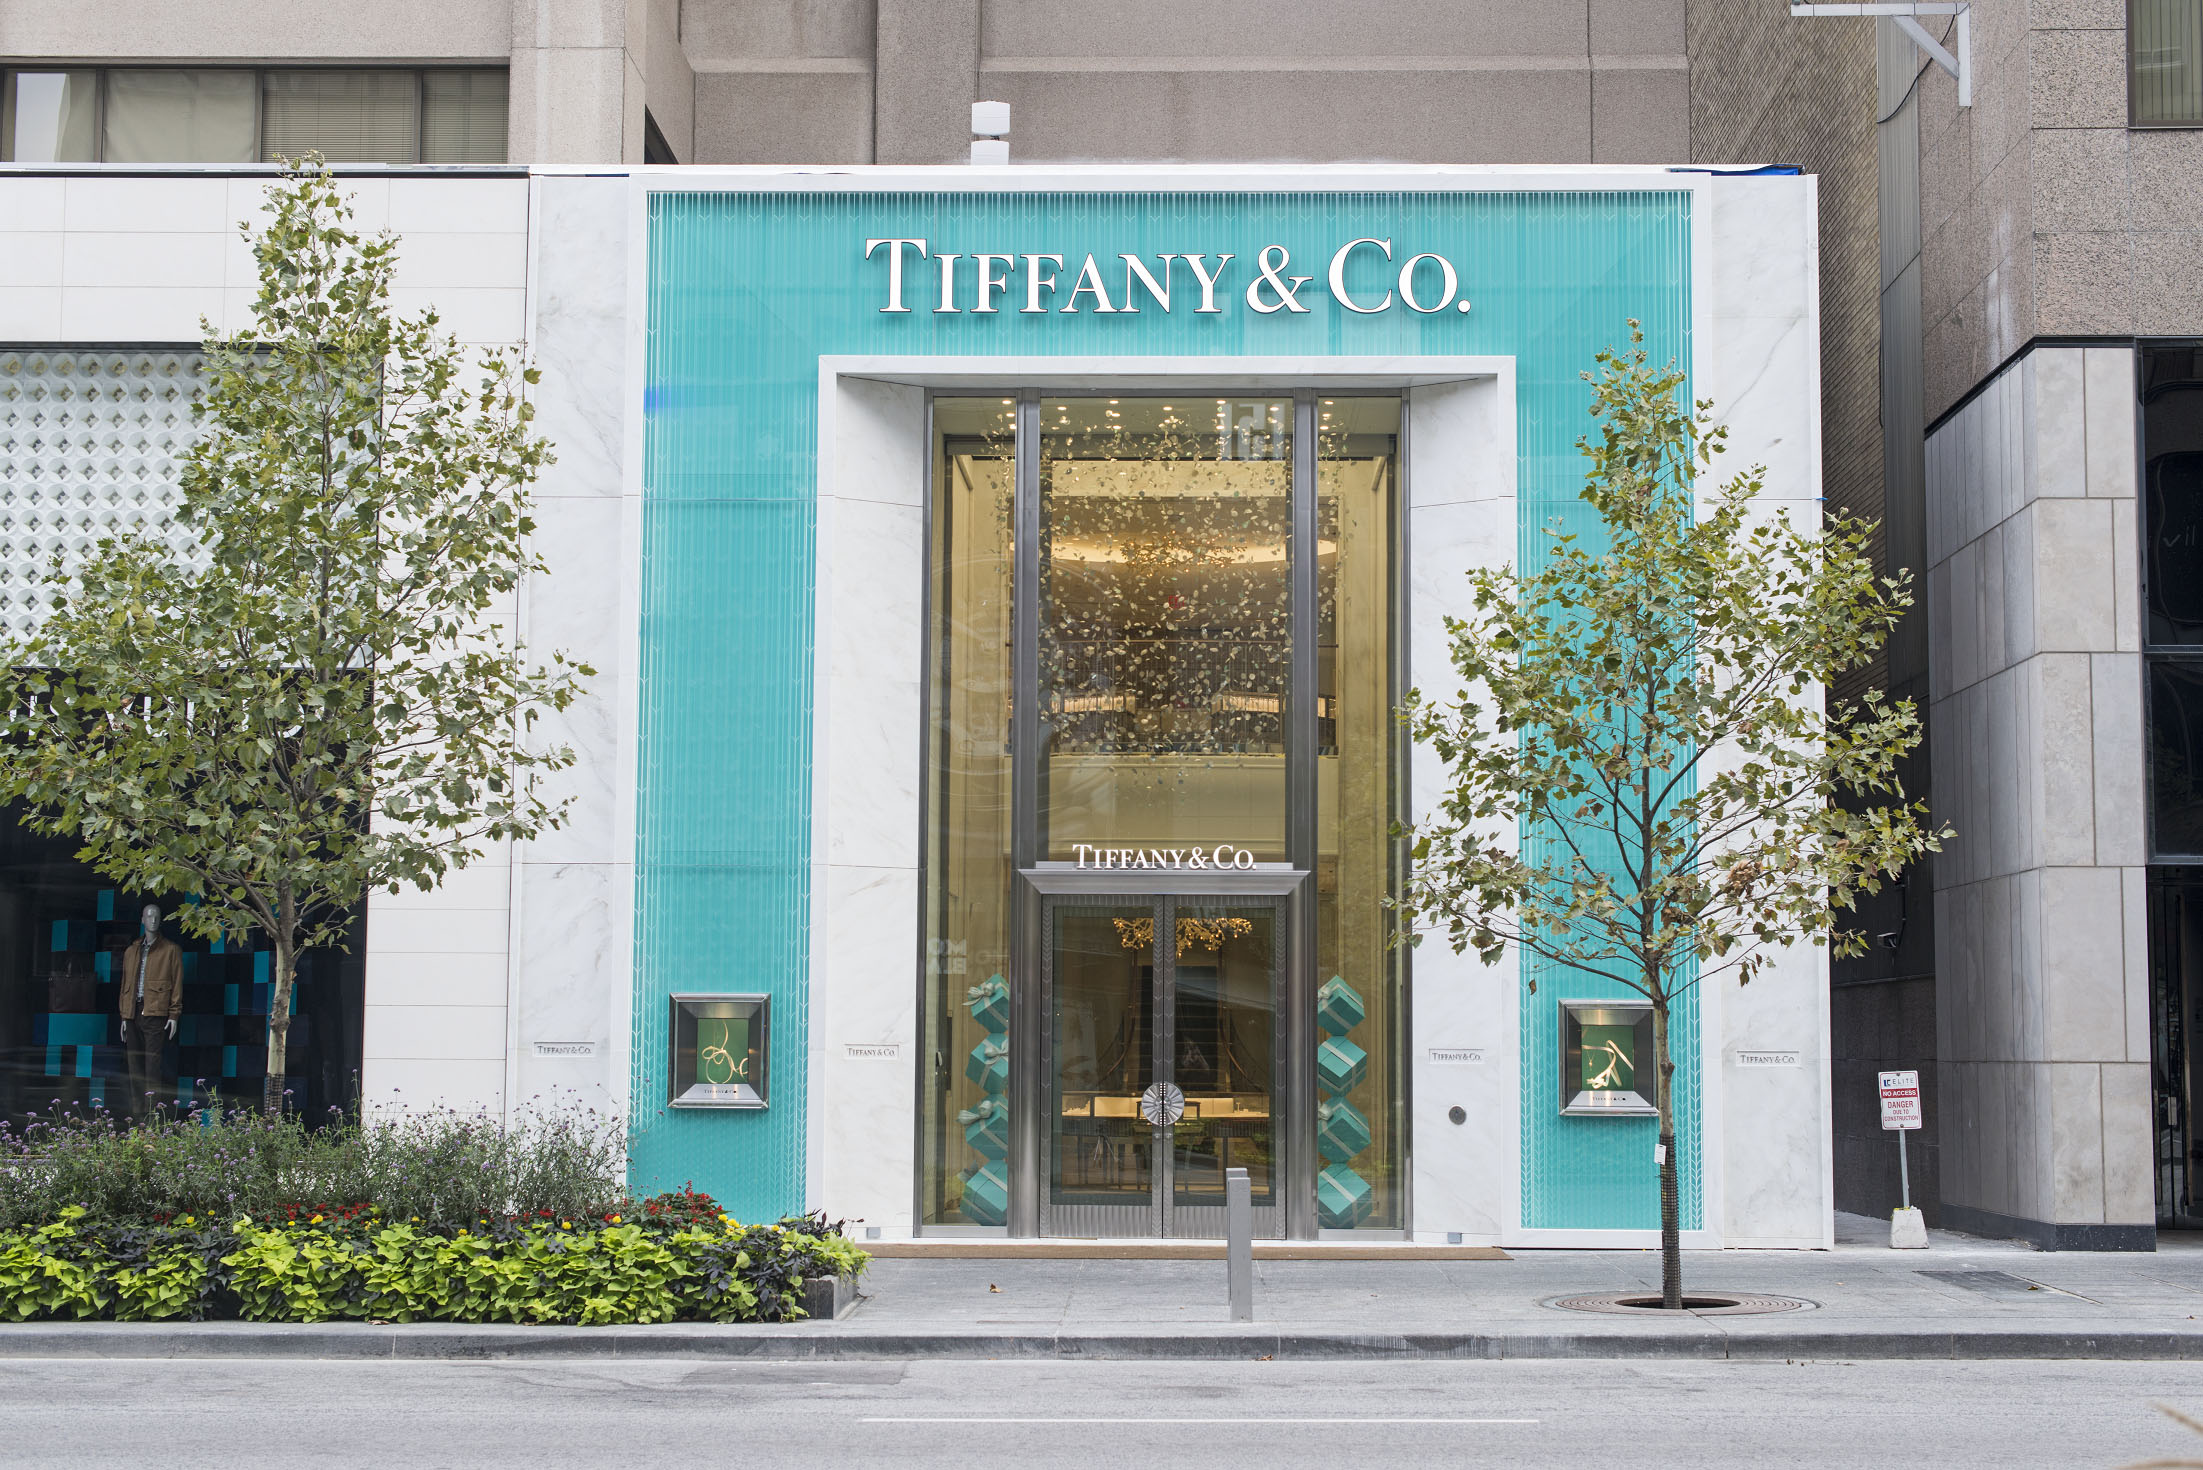 We have the highest quality custom engagement rings and custom diamonds in the world, sourcing from the same cutters and polishers as some ultra-high end retailers, like Tiffany & Co., at 50 - 80% less than jewellery store prices.